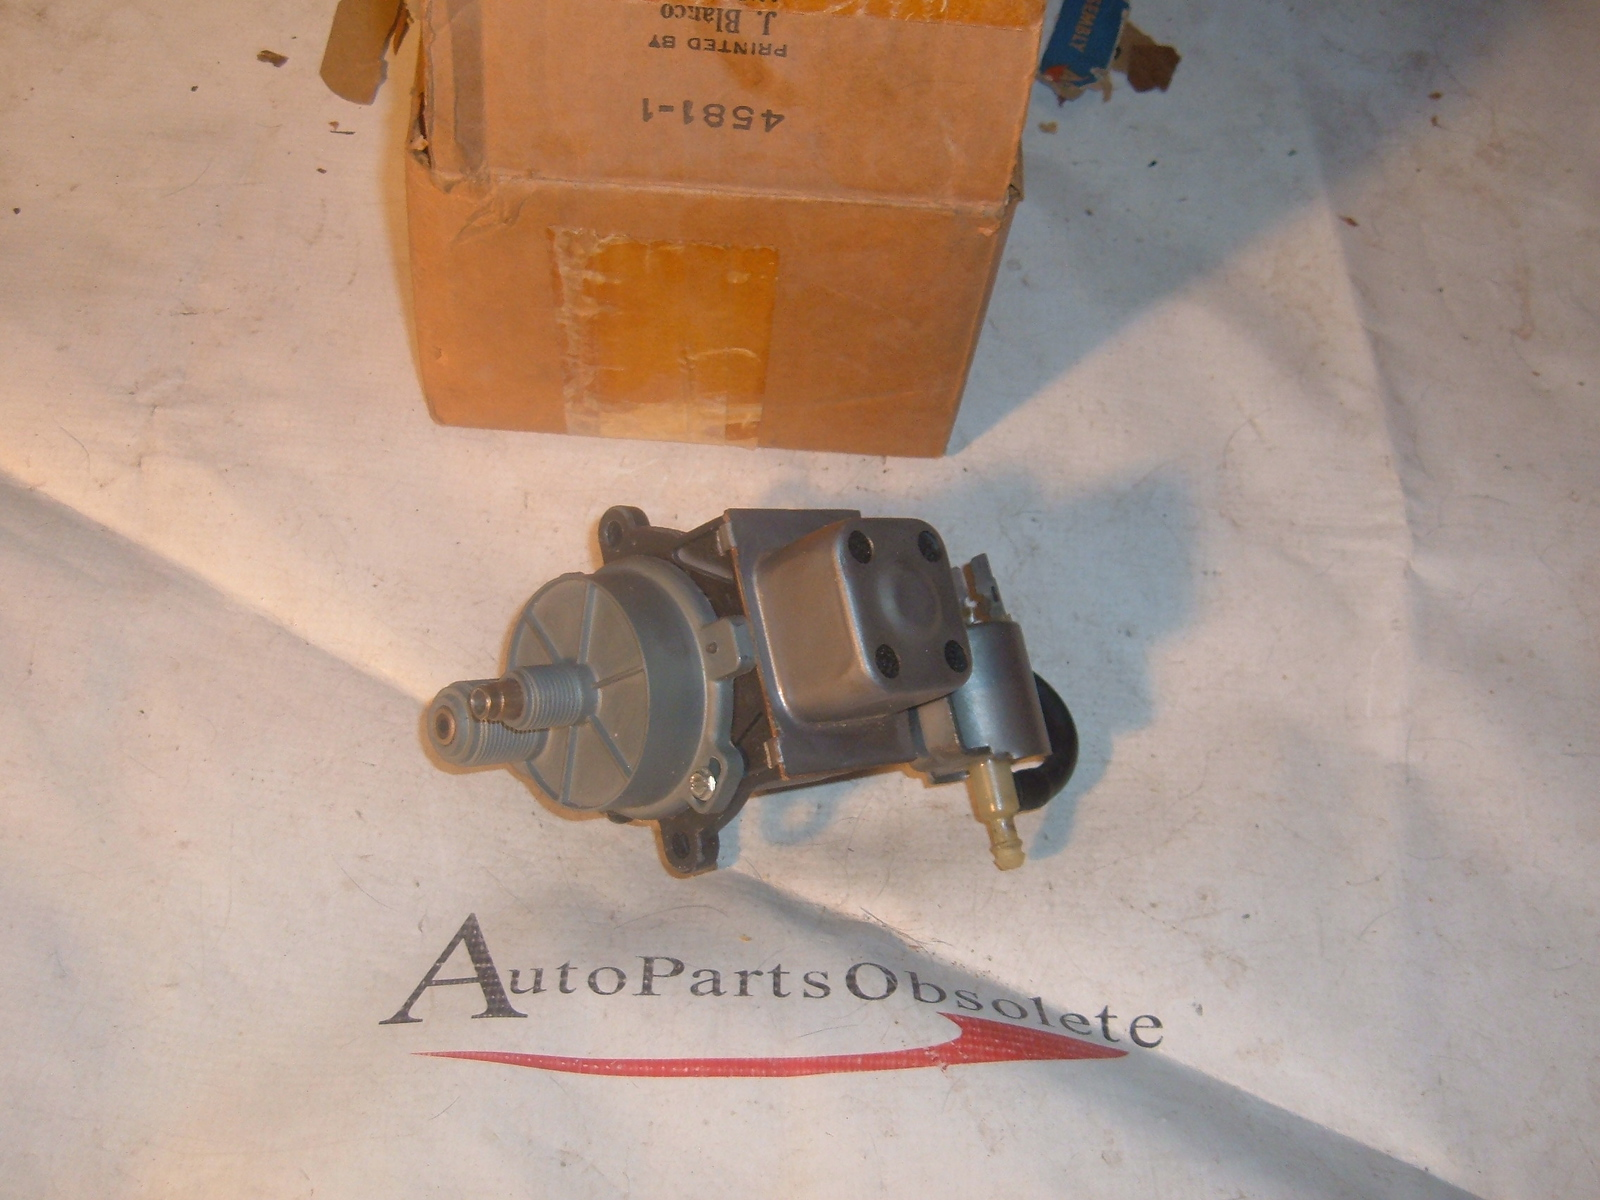 View Product1968 69 70 71 72 73 chevrolet crusie control servo /brain nos gm nos (z 69-74 crusie)